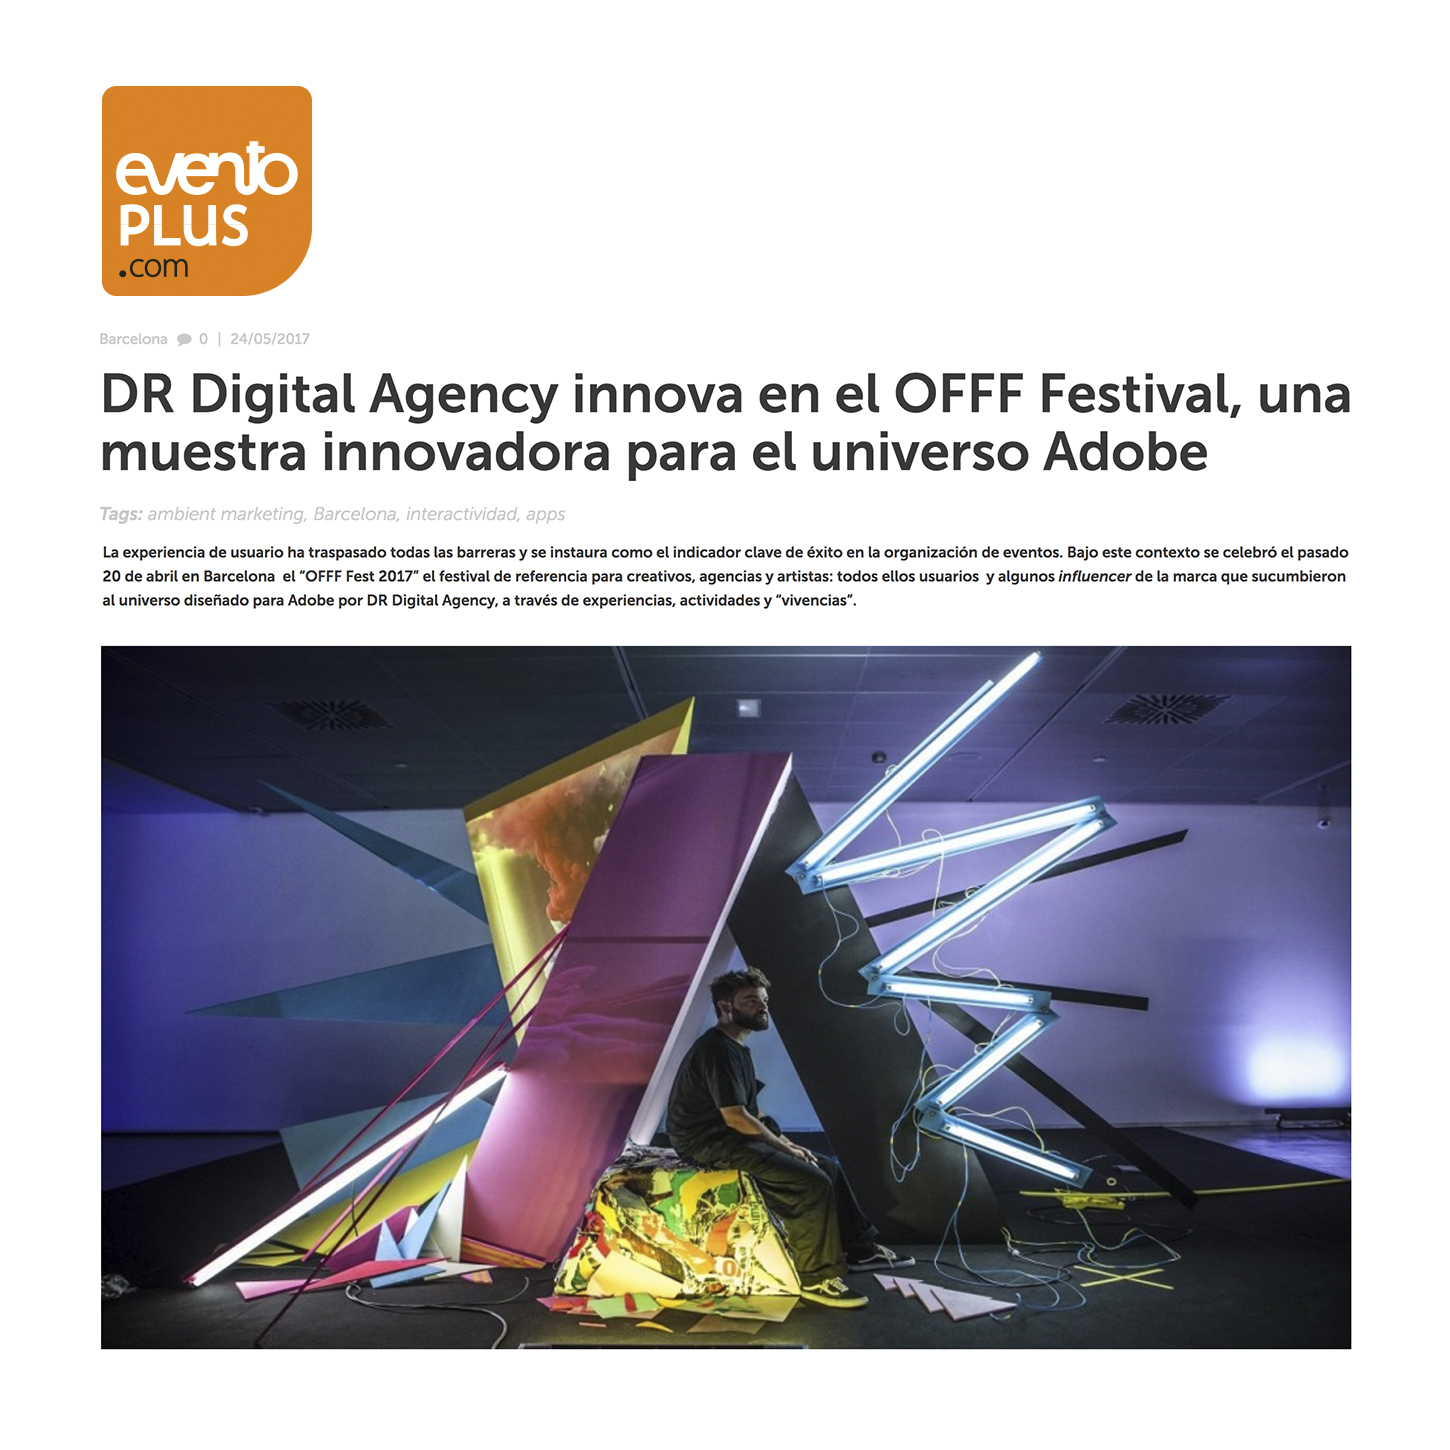 DR innovates at OFFF an innovative sample for the Adobe universe.